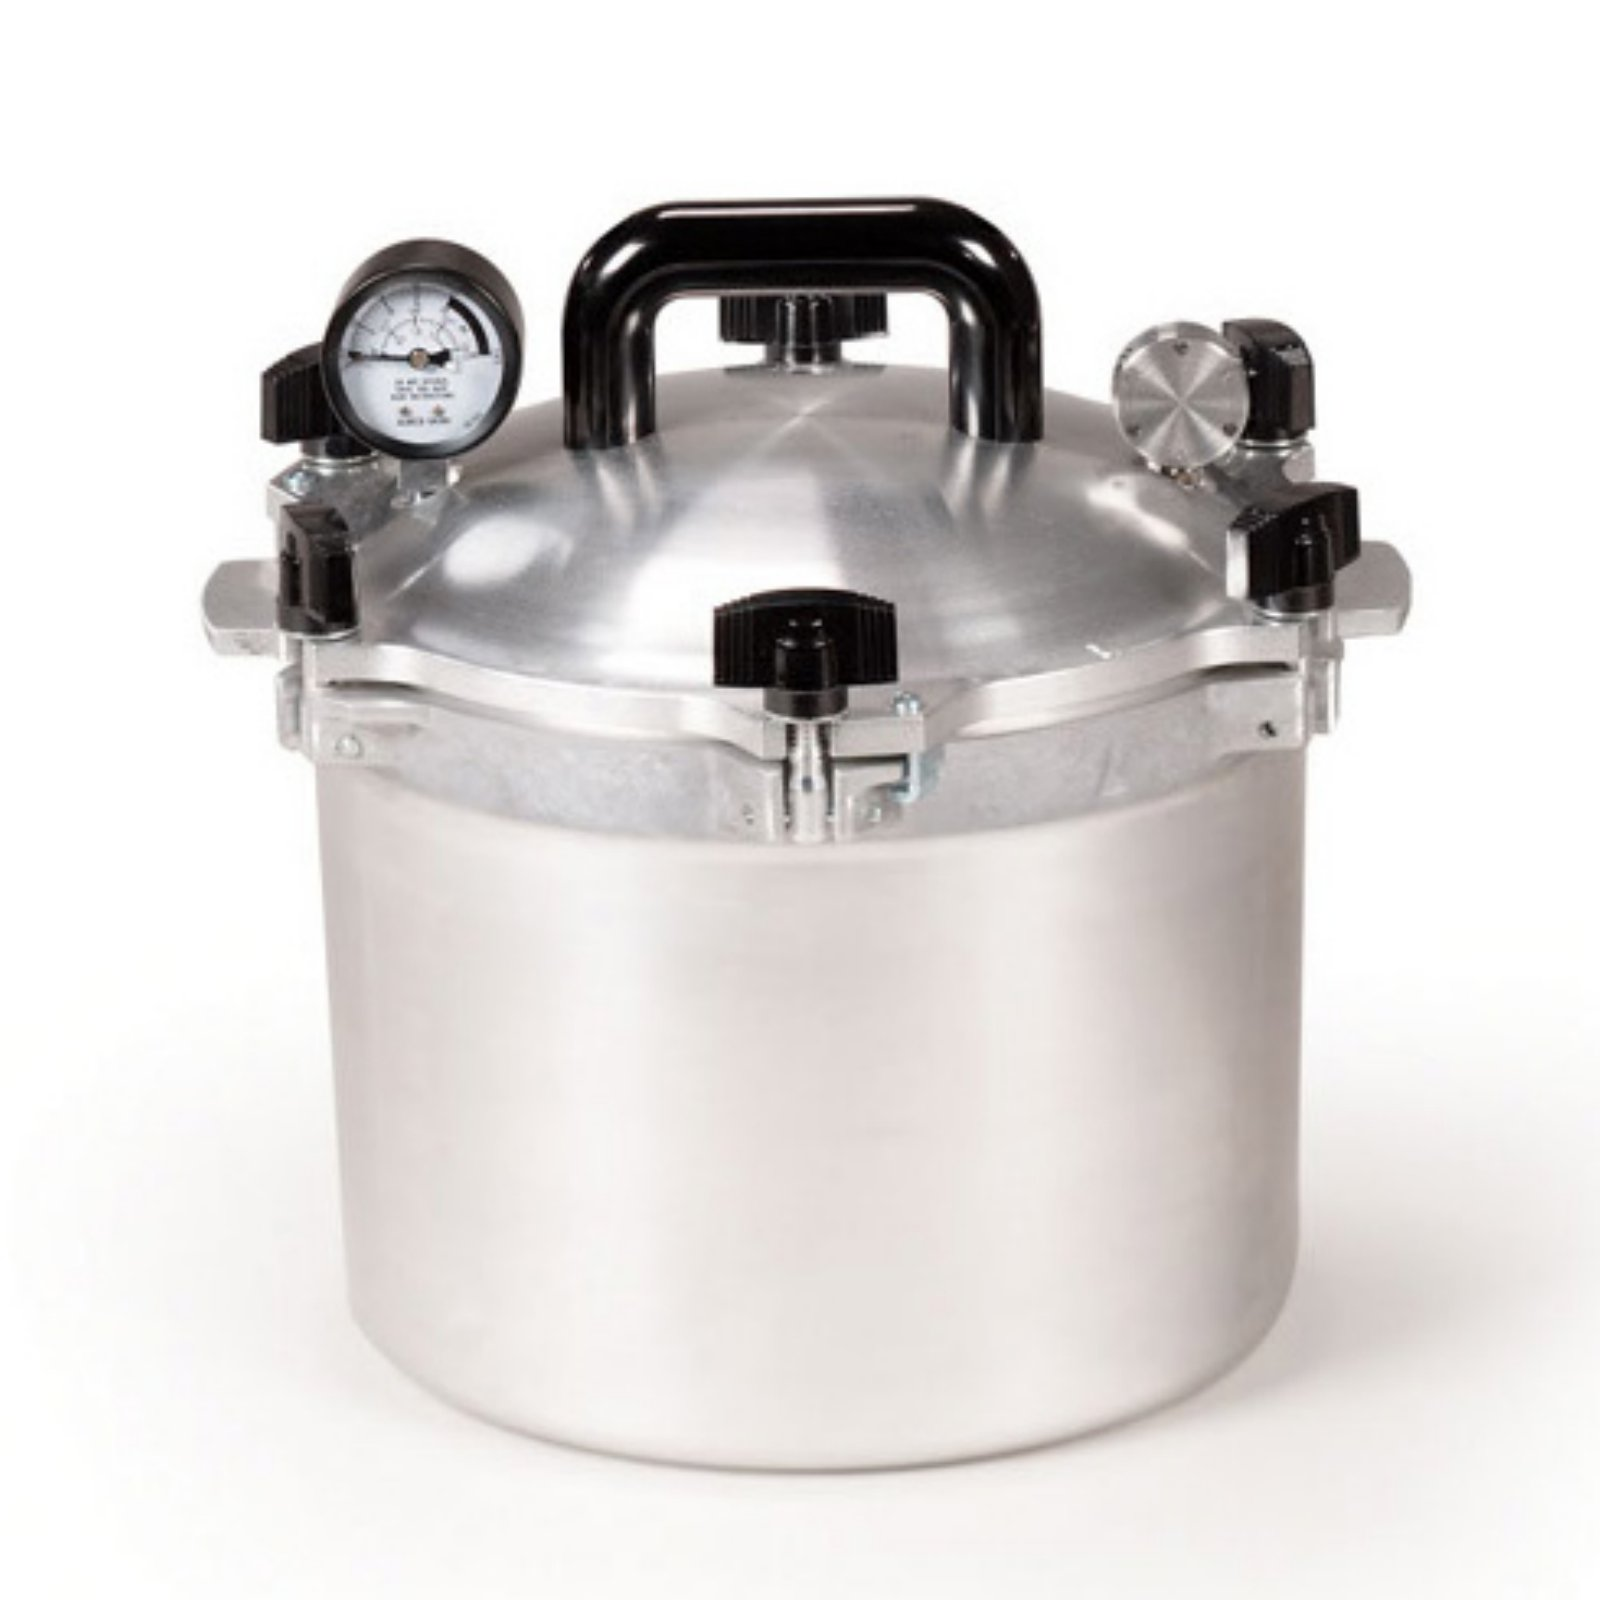 All American 910 10.5 Quart Pressure Cooker Canner by Wisconsin Aluminum Foundry